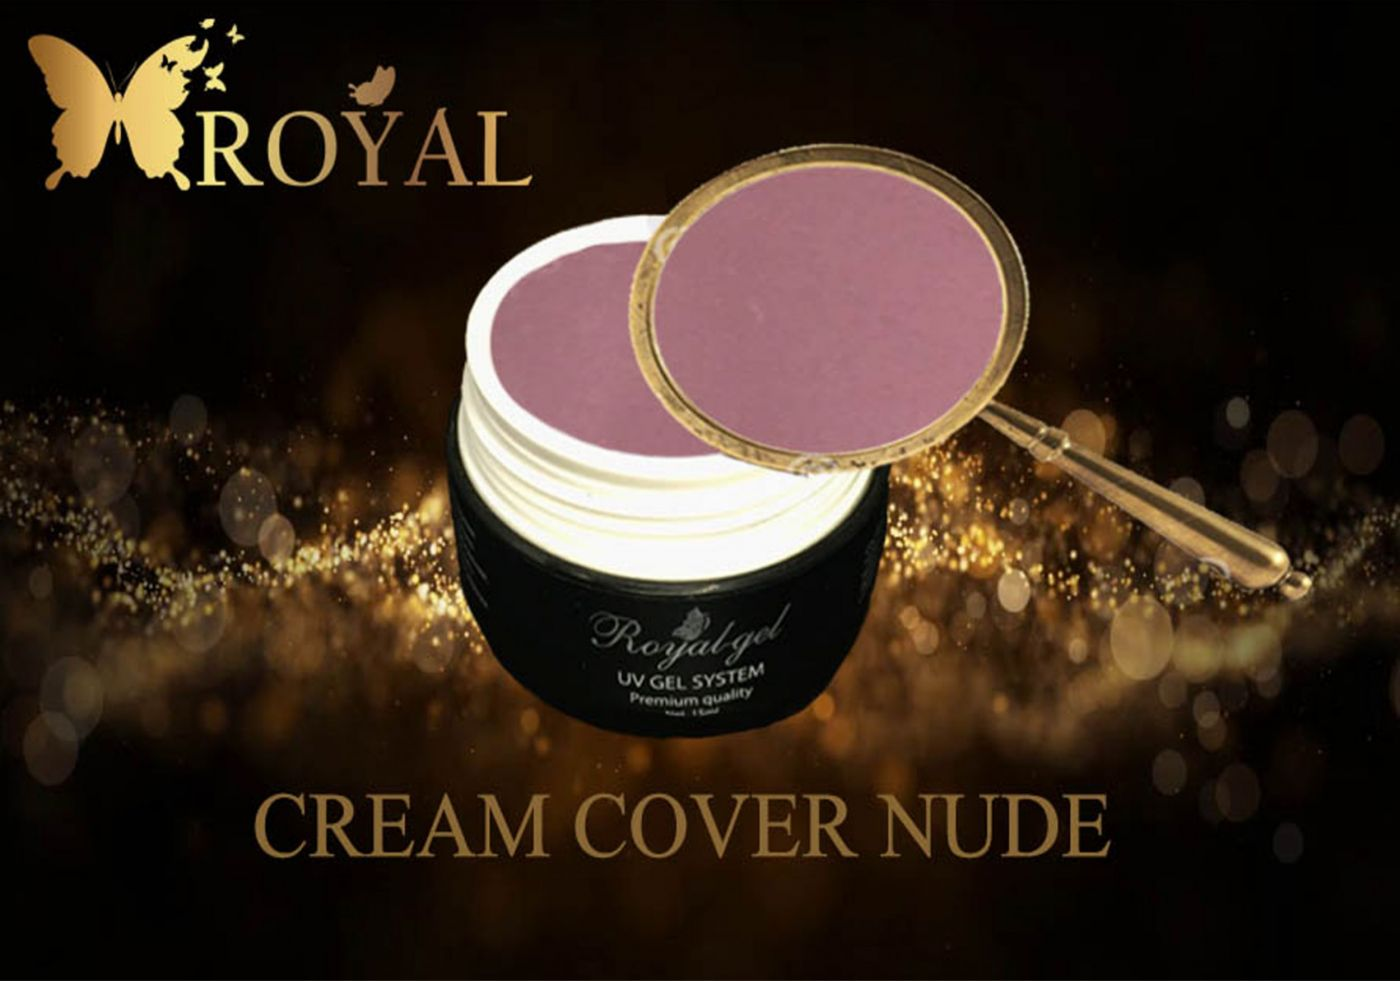 CREAM COVER NUDE ROYAL GEL